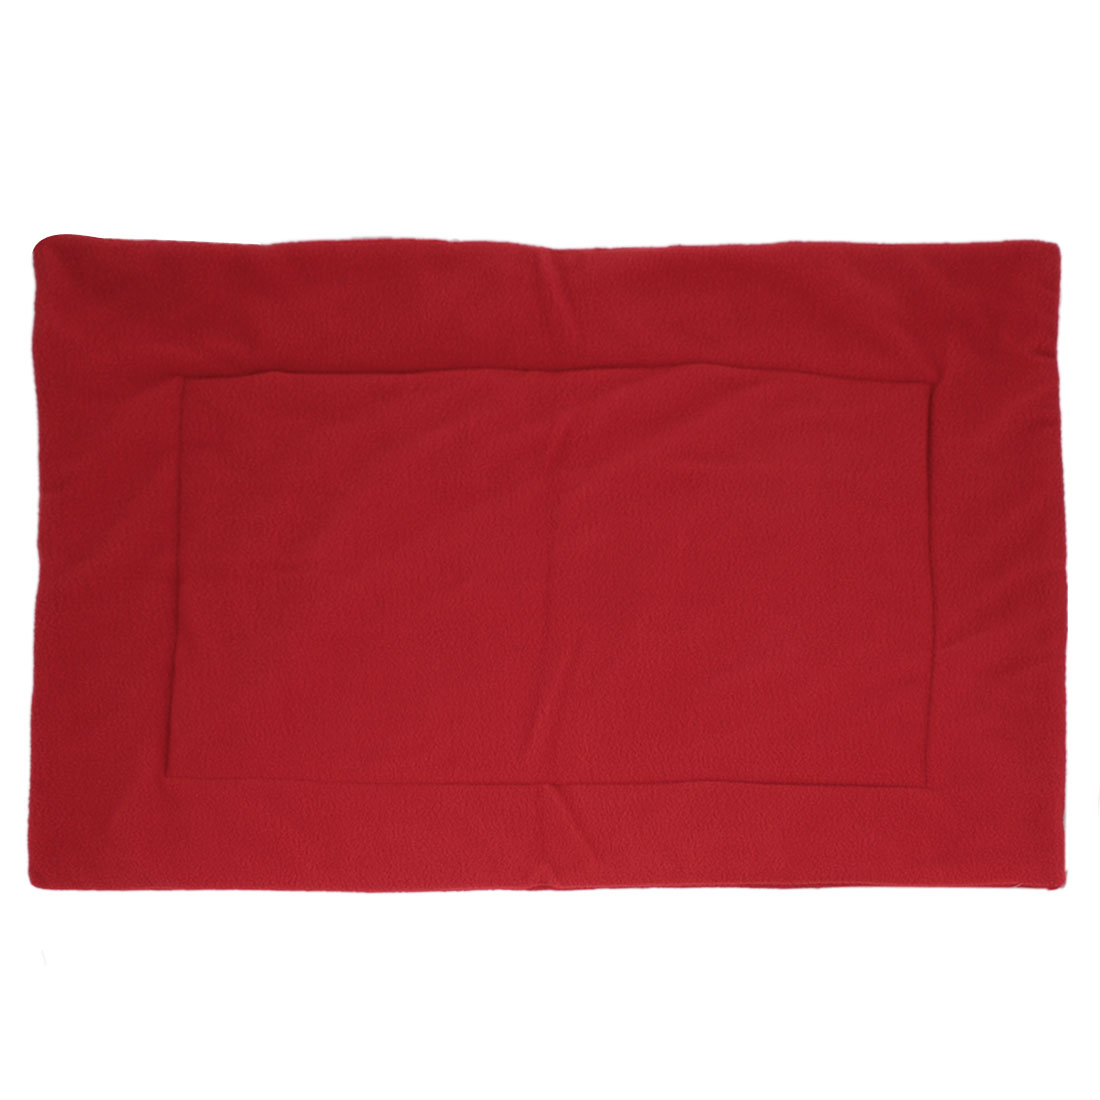 Winter Warm Red Rectangular Cushion Pad Mat 70cm x 50cm for Pet Cat Dog